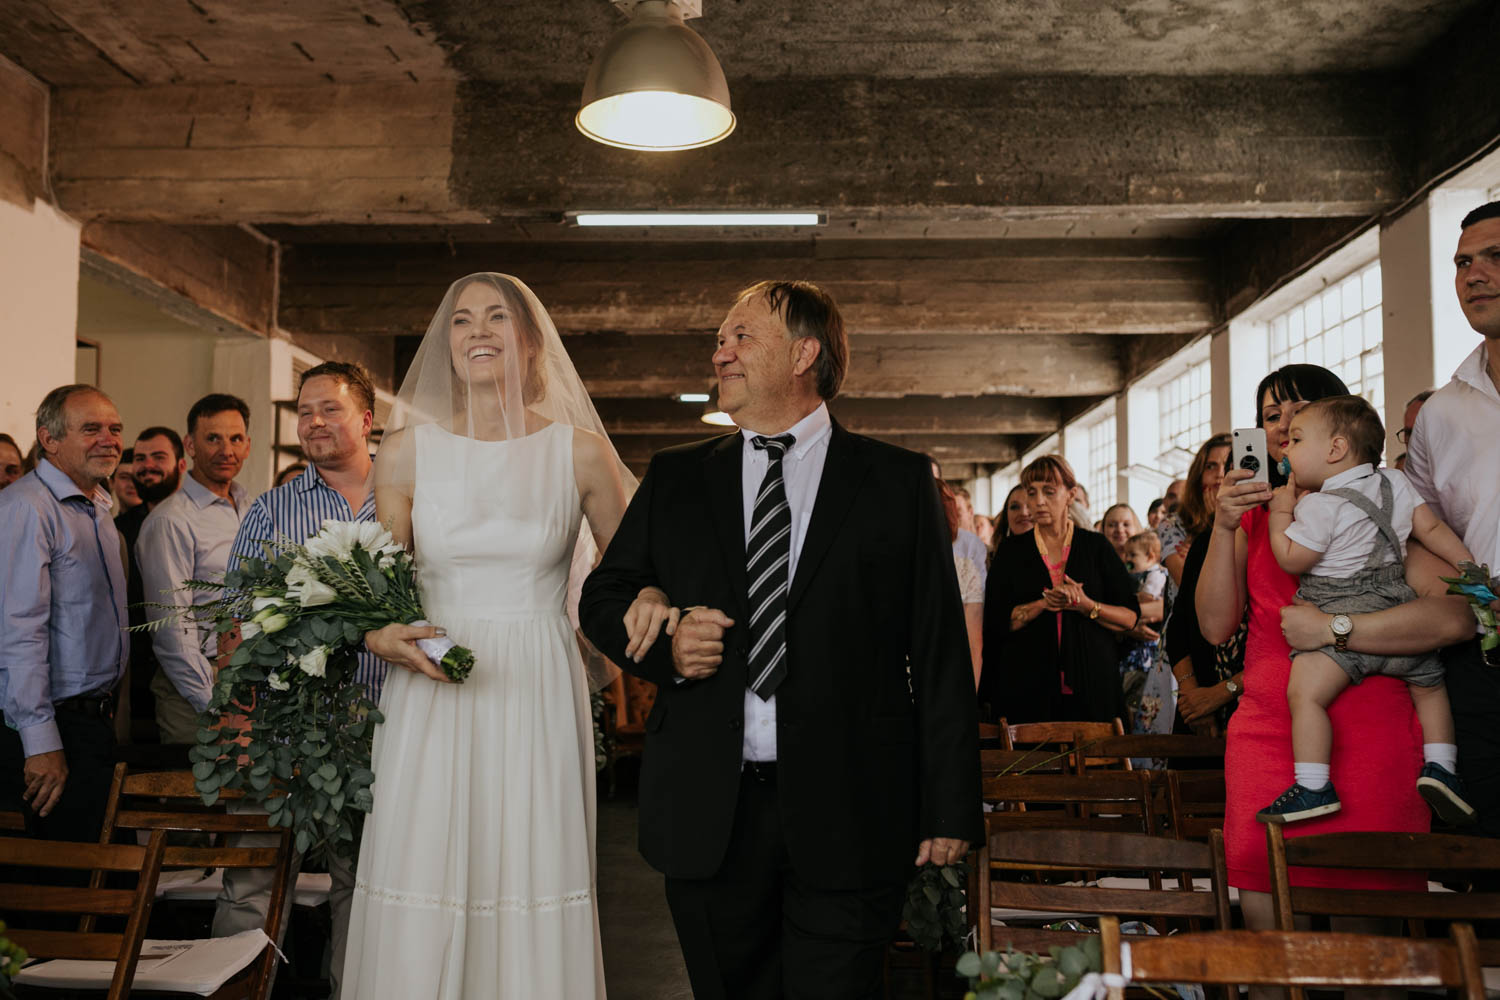 Bride Holding Simple White And Olive Green Wedding Bouquet Walks Down Aisle With Father